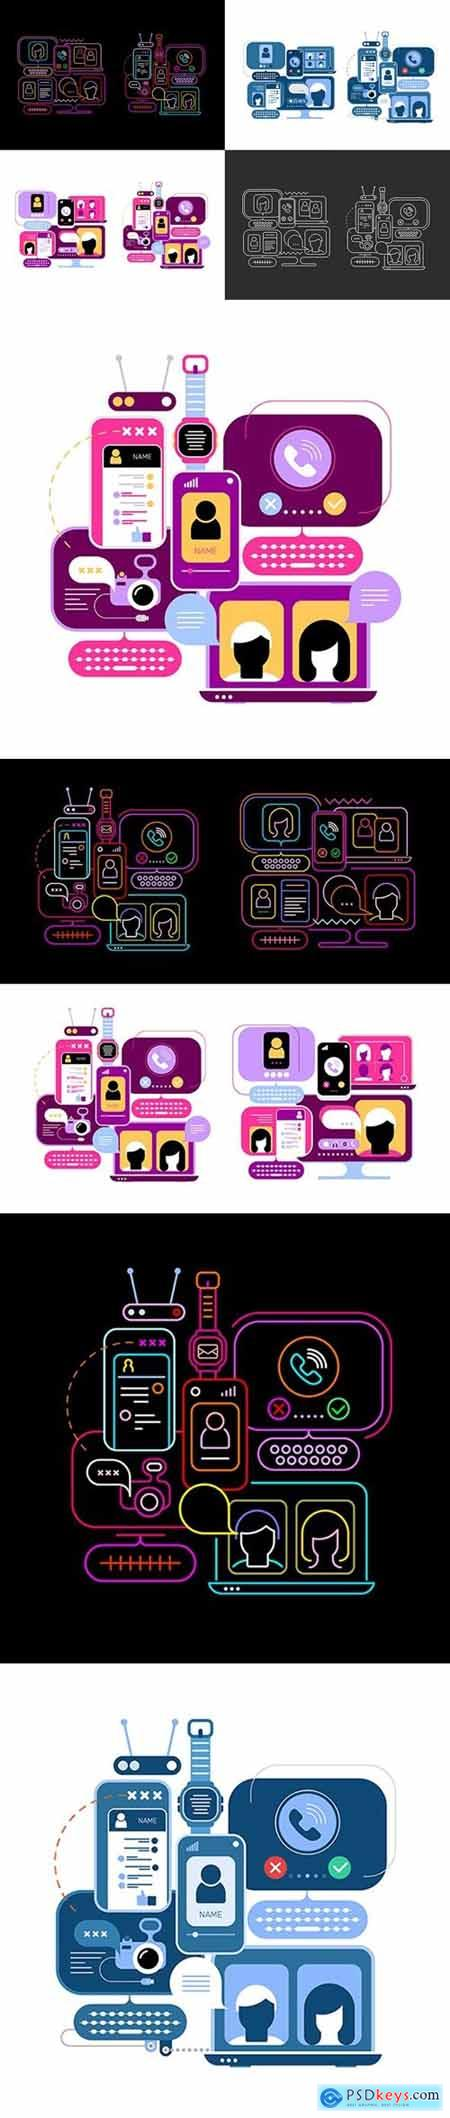 10 options of an Online Chatting Vector Design